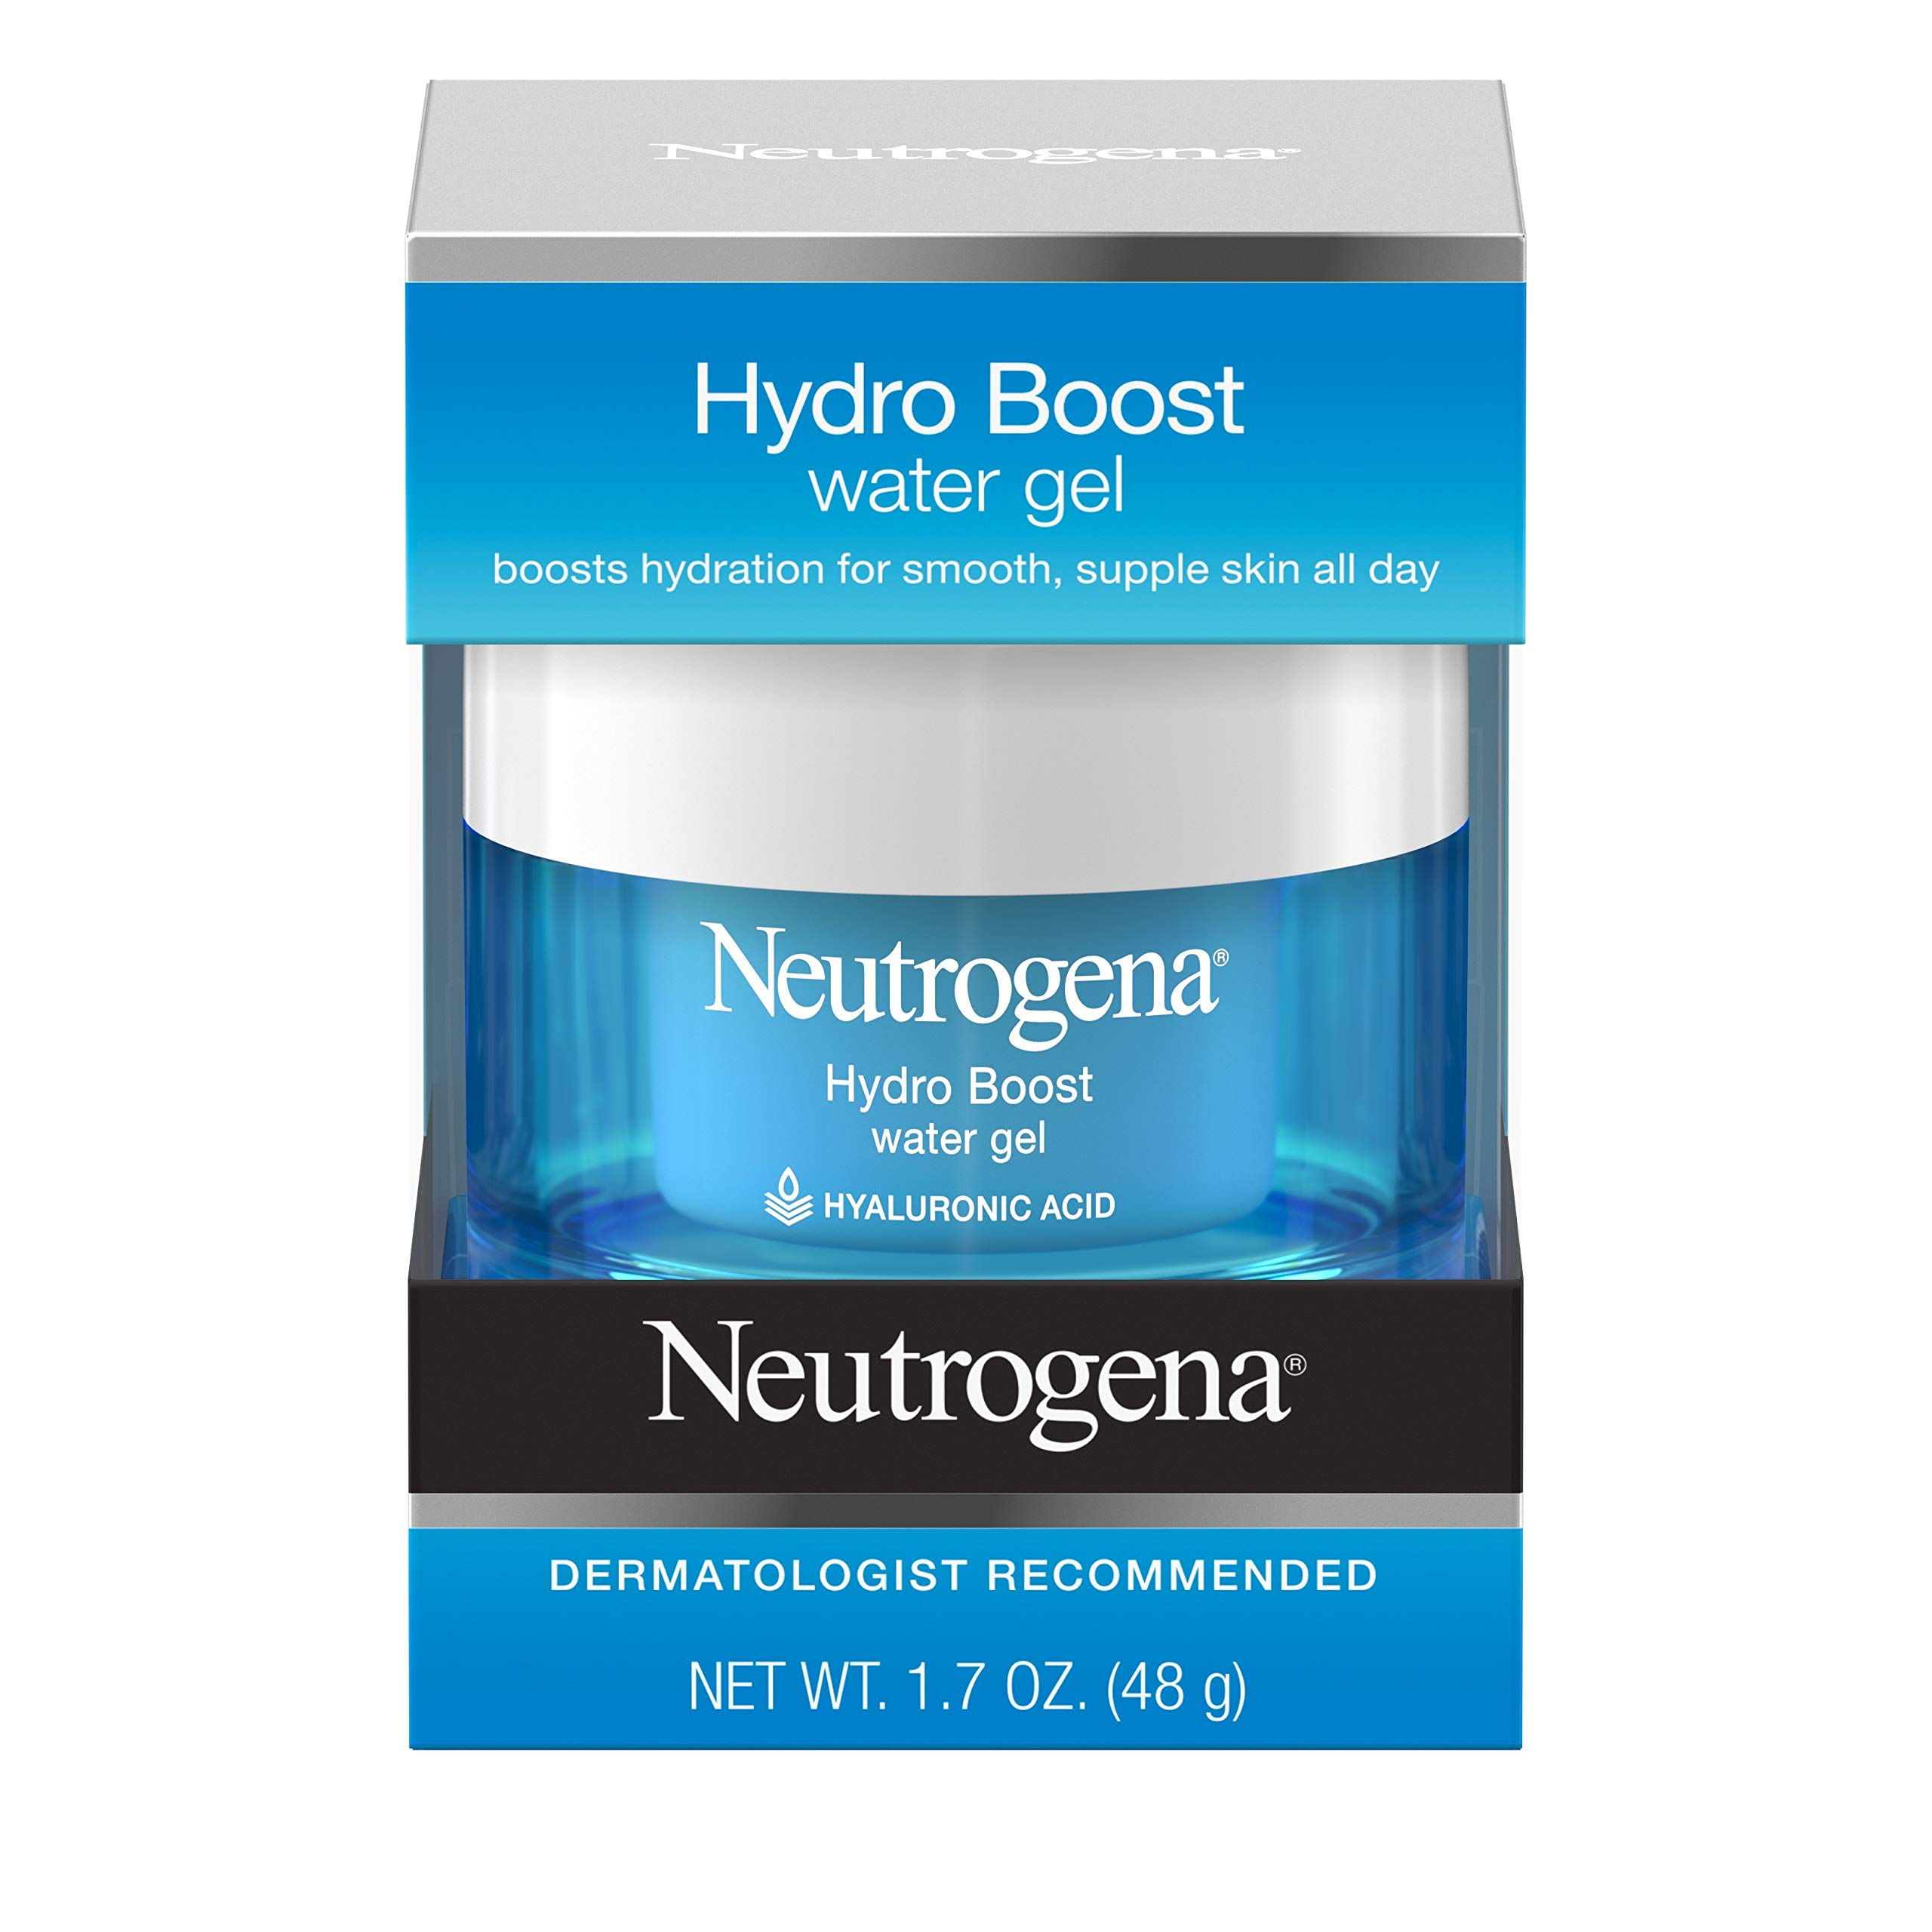 Neutrogena Hydro Boost Hyaluronic Acid Hydrating Water Face Gel Moisturizer for Dry Skin, 1.7 fl. oz by Neutrogena